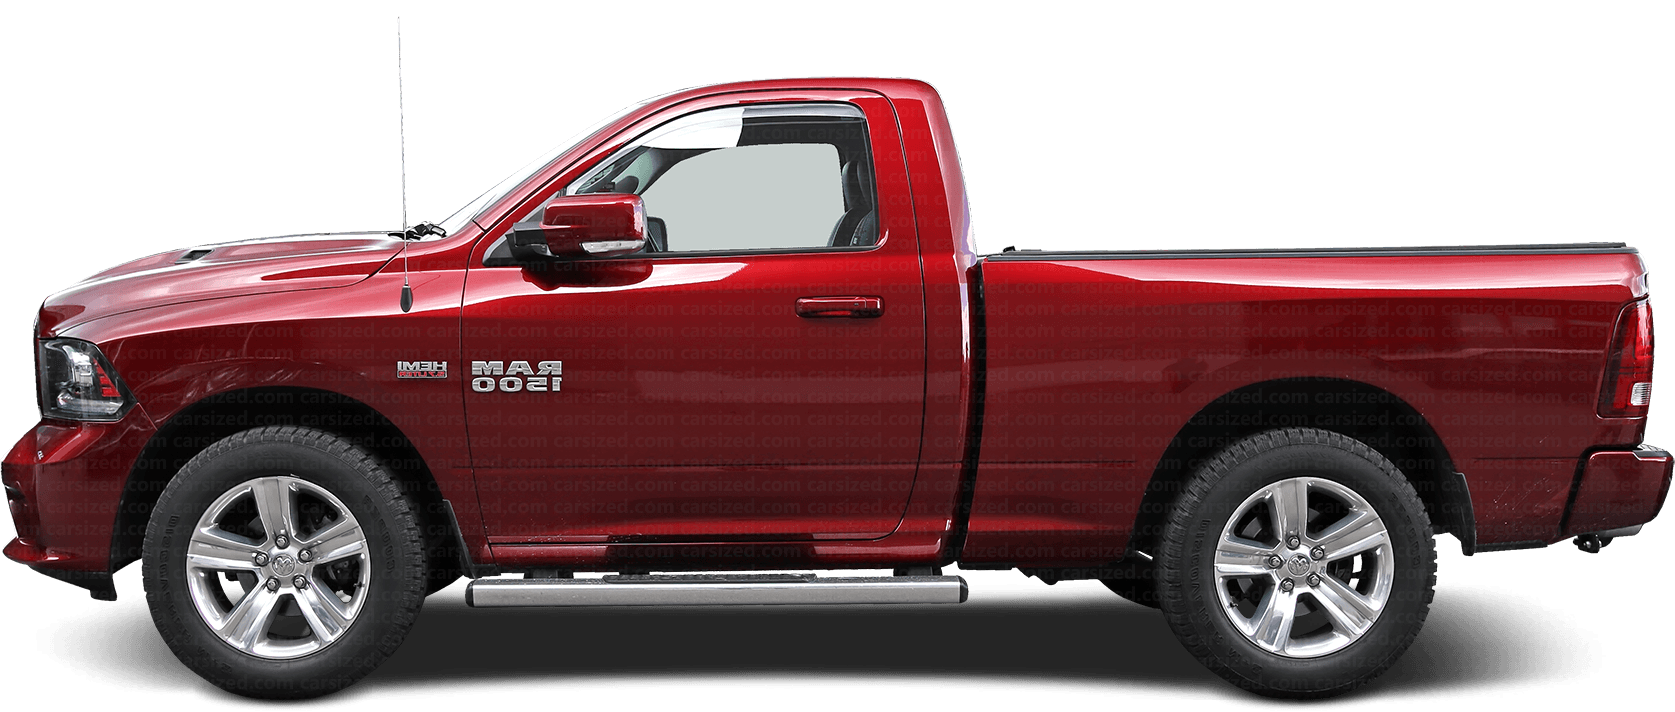 Dodge Ram Pick-up 1500 Regular Cab 2010 - 2019